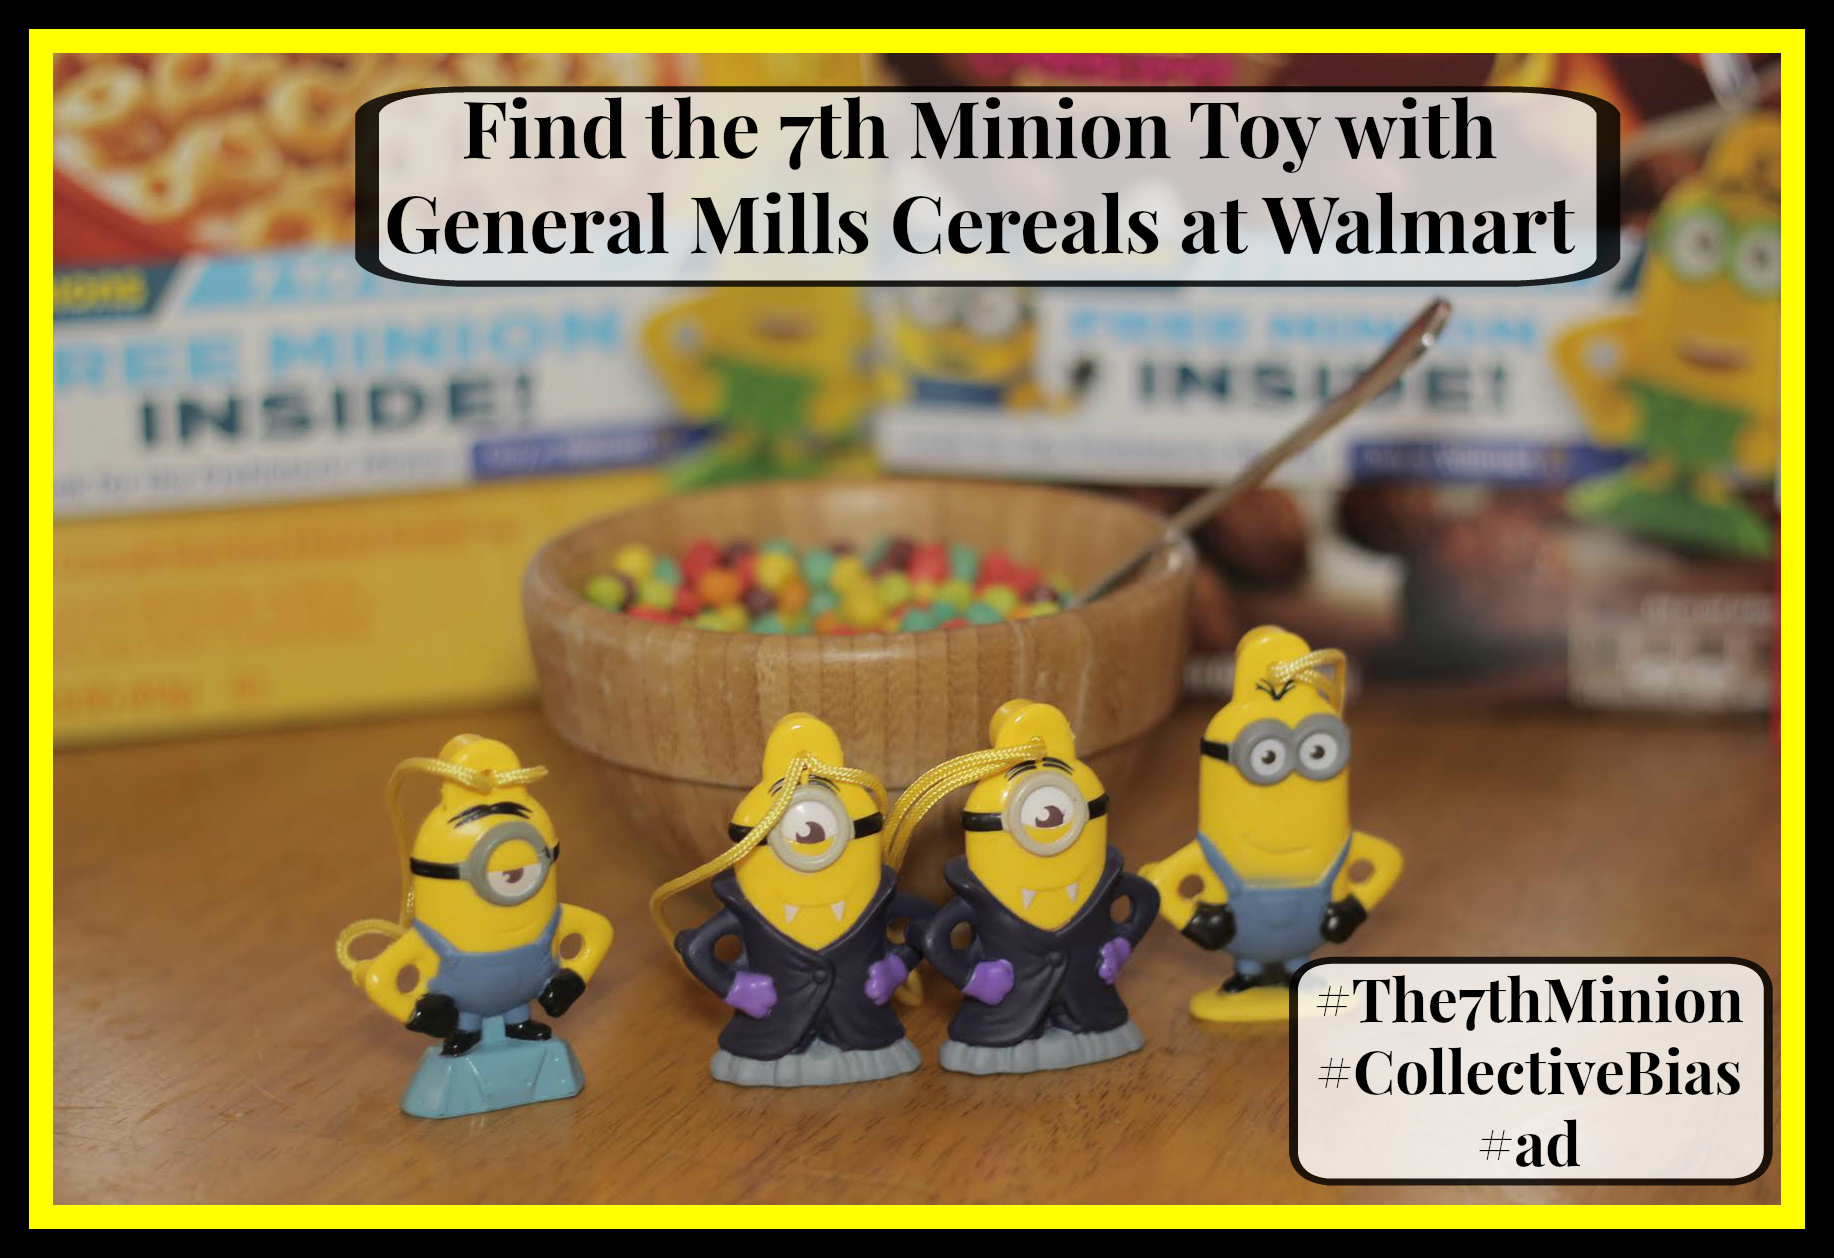 #The7thMinion #CollectiveBias